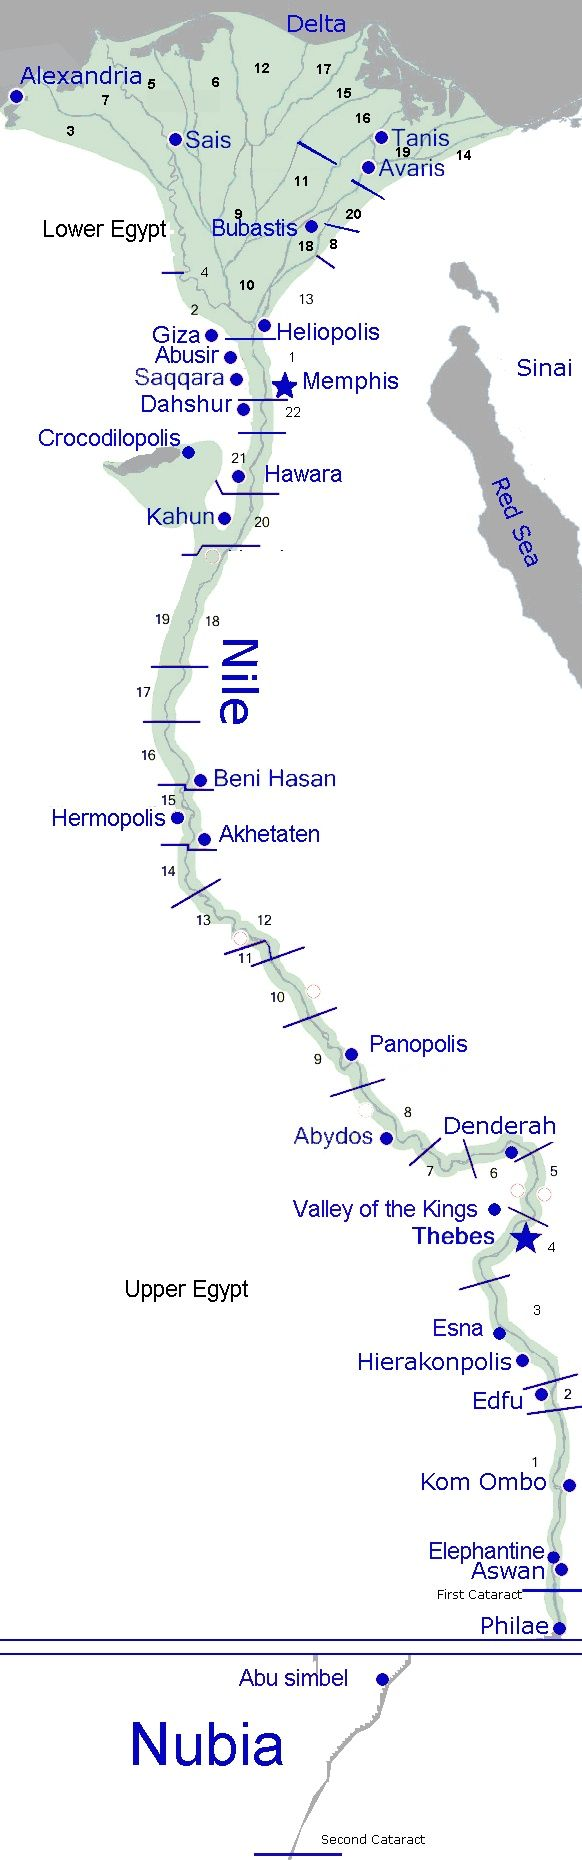 Nile Valley of Ancient Egypt ~ Egyptian civilization developed along the banks of the river Nile. The Nile Valley stands in sharp contrast to the arid deserts of Africa. Its long, narrow flood plain was a magnet for life, attracting people, animals and plants to its banks, and providing ideal conditions for the development of stable communities. Evidence suggests that the region was inhabited as far back as 700,000 years ago by Neolithic and Paleolithic Man.